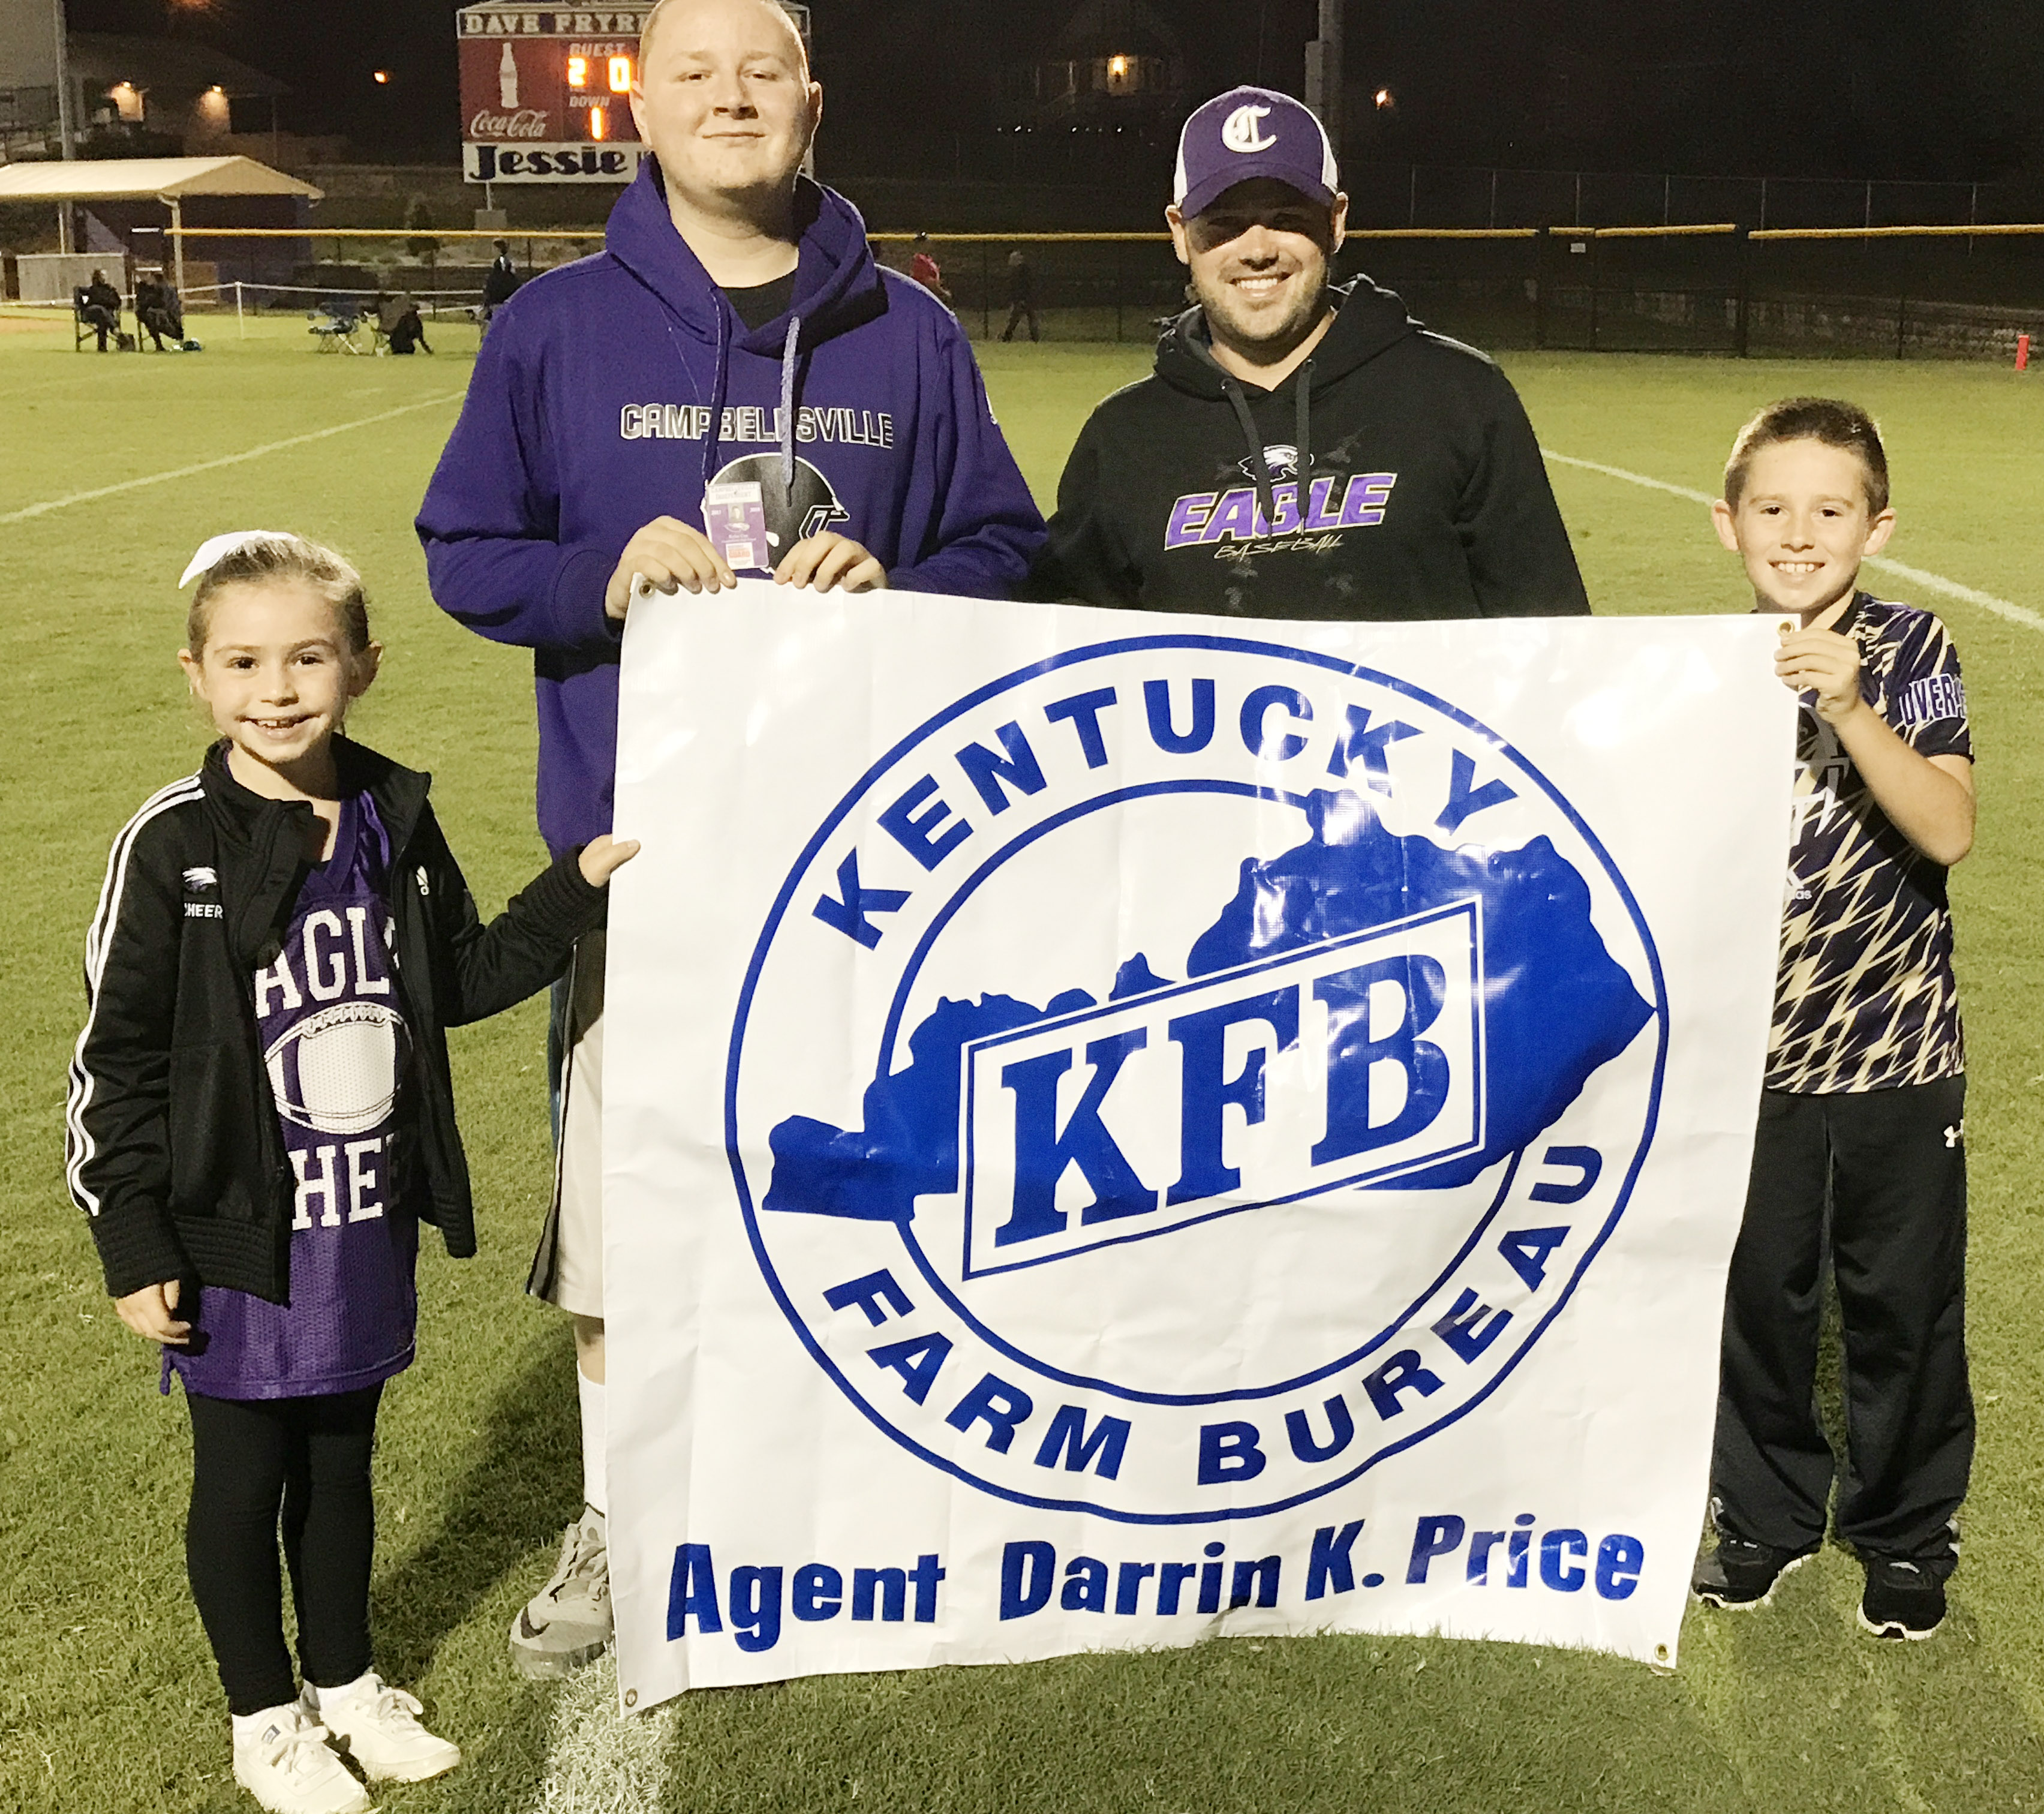 Kentucky Farm Bureau sponsors the Kick for Kids, which awards $50 for a successful field goal attempt during halftime. From left are Campbellsville Elementary School second-grader Lainey Price, CHS freshman Kylar Cox, who received $50 for head baseball coach Blake Milby's successful kick, Milby and third-grader Lanigan Price.